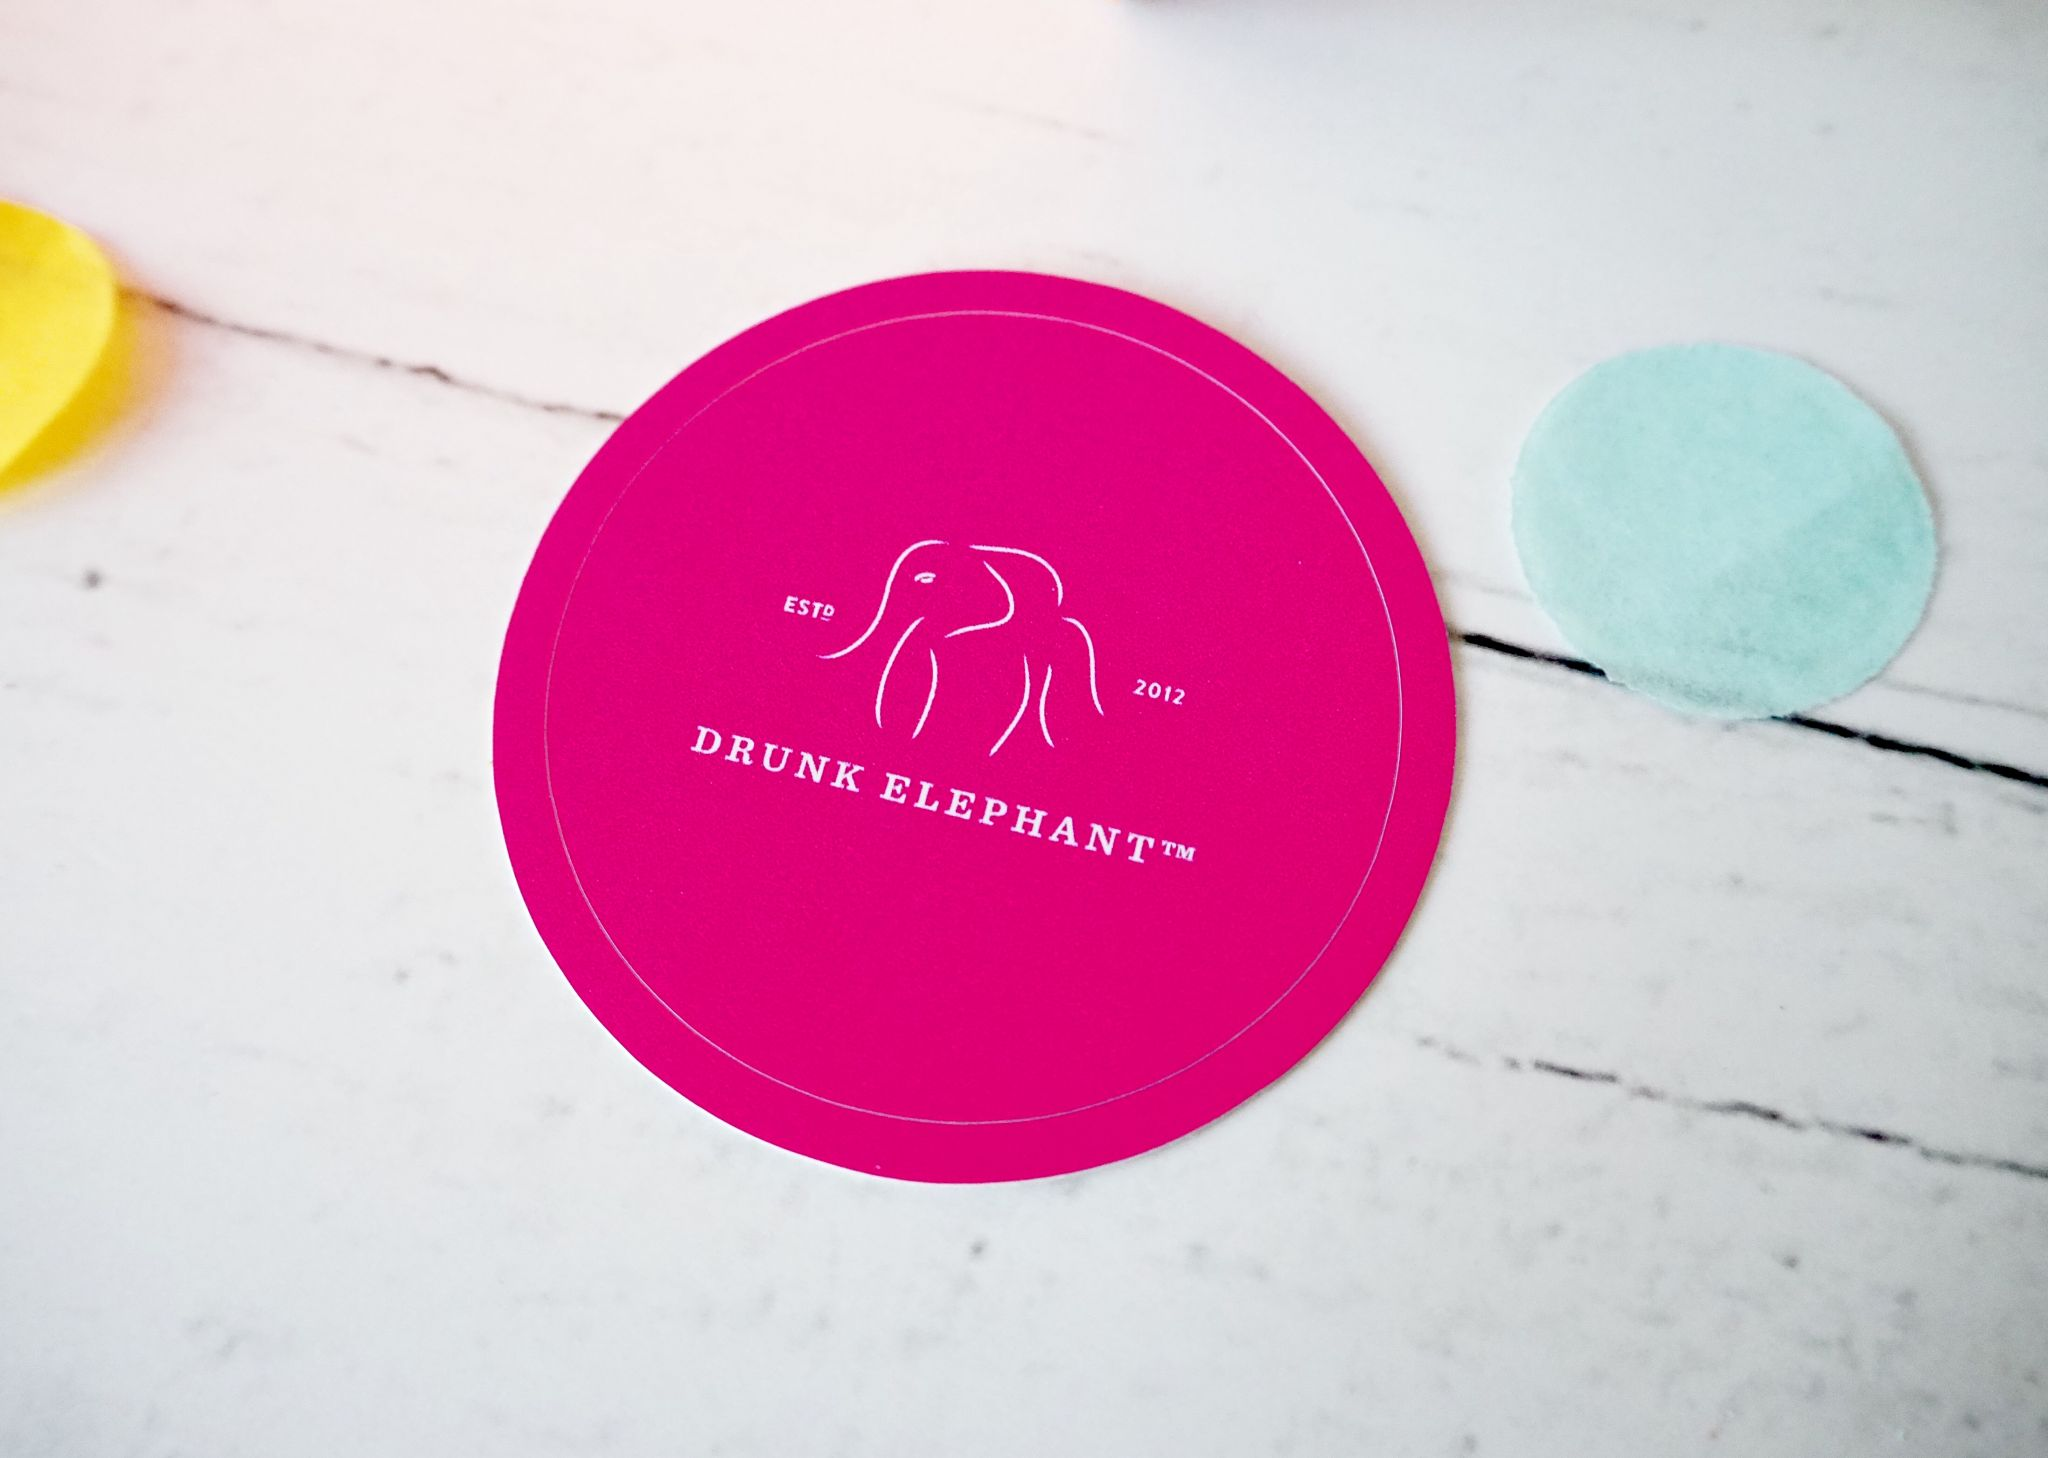 Drunk Elephant UK